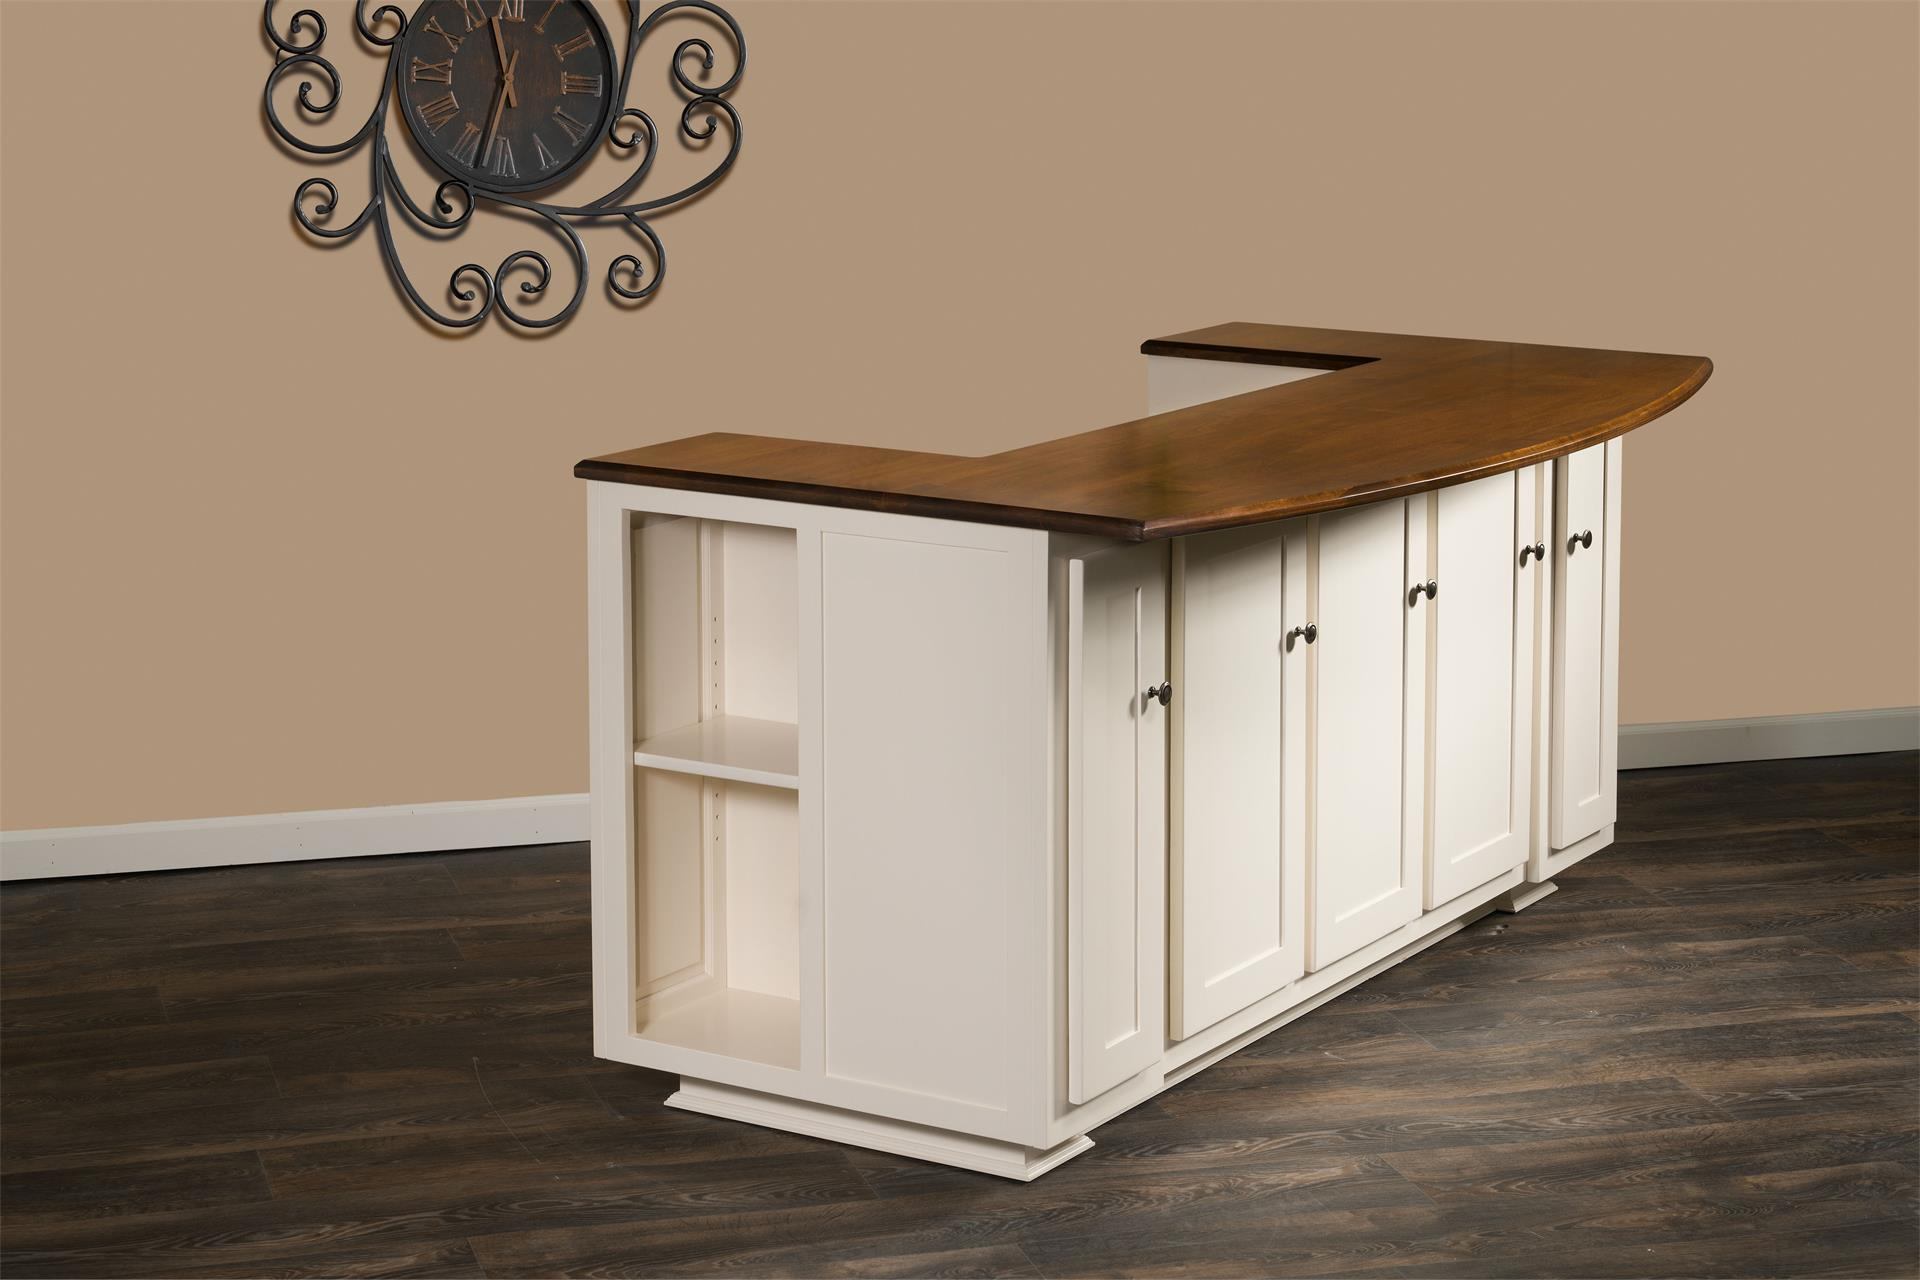 Newbury kitchen island with bench from dutchcrafters amish furniture